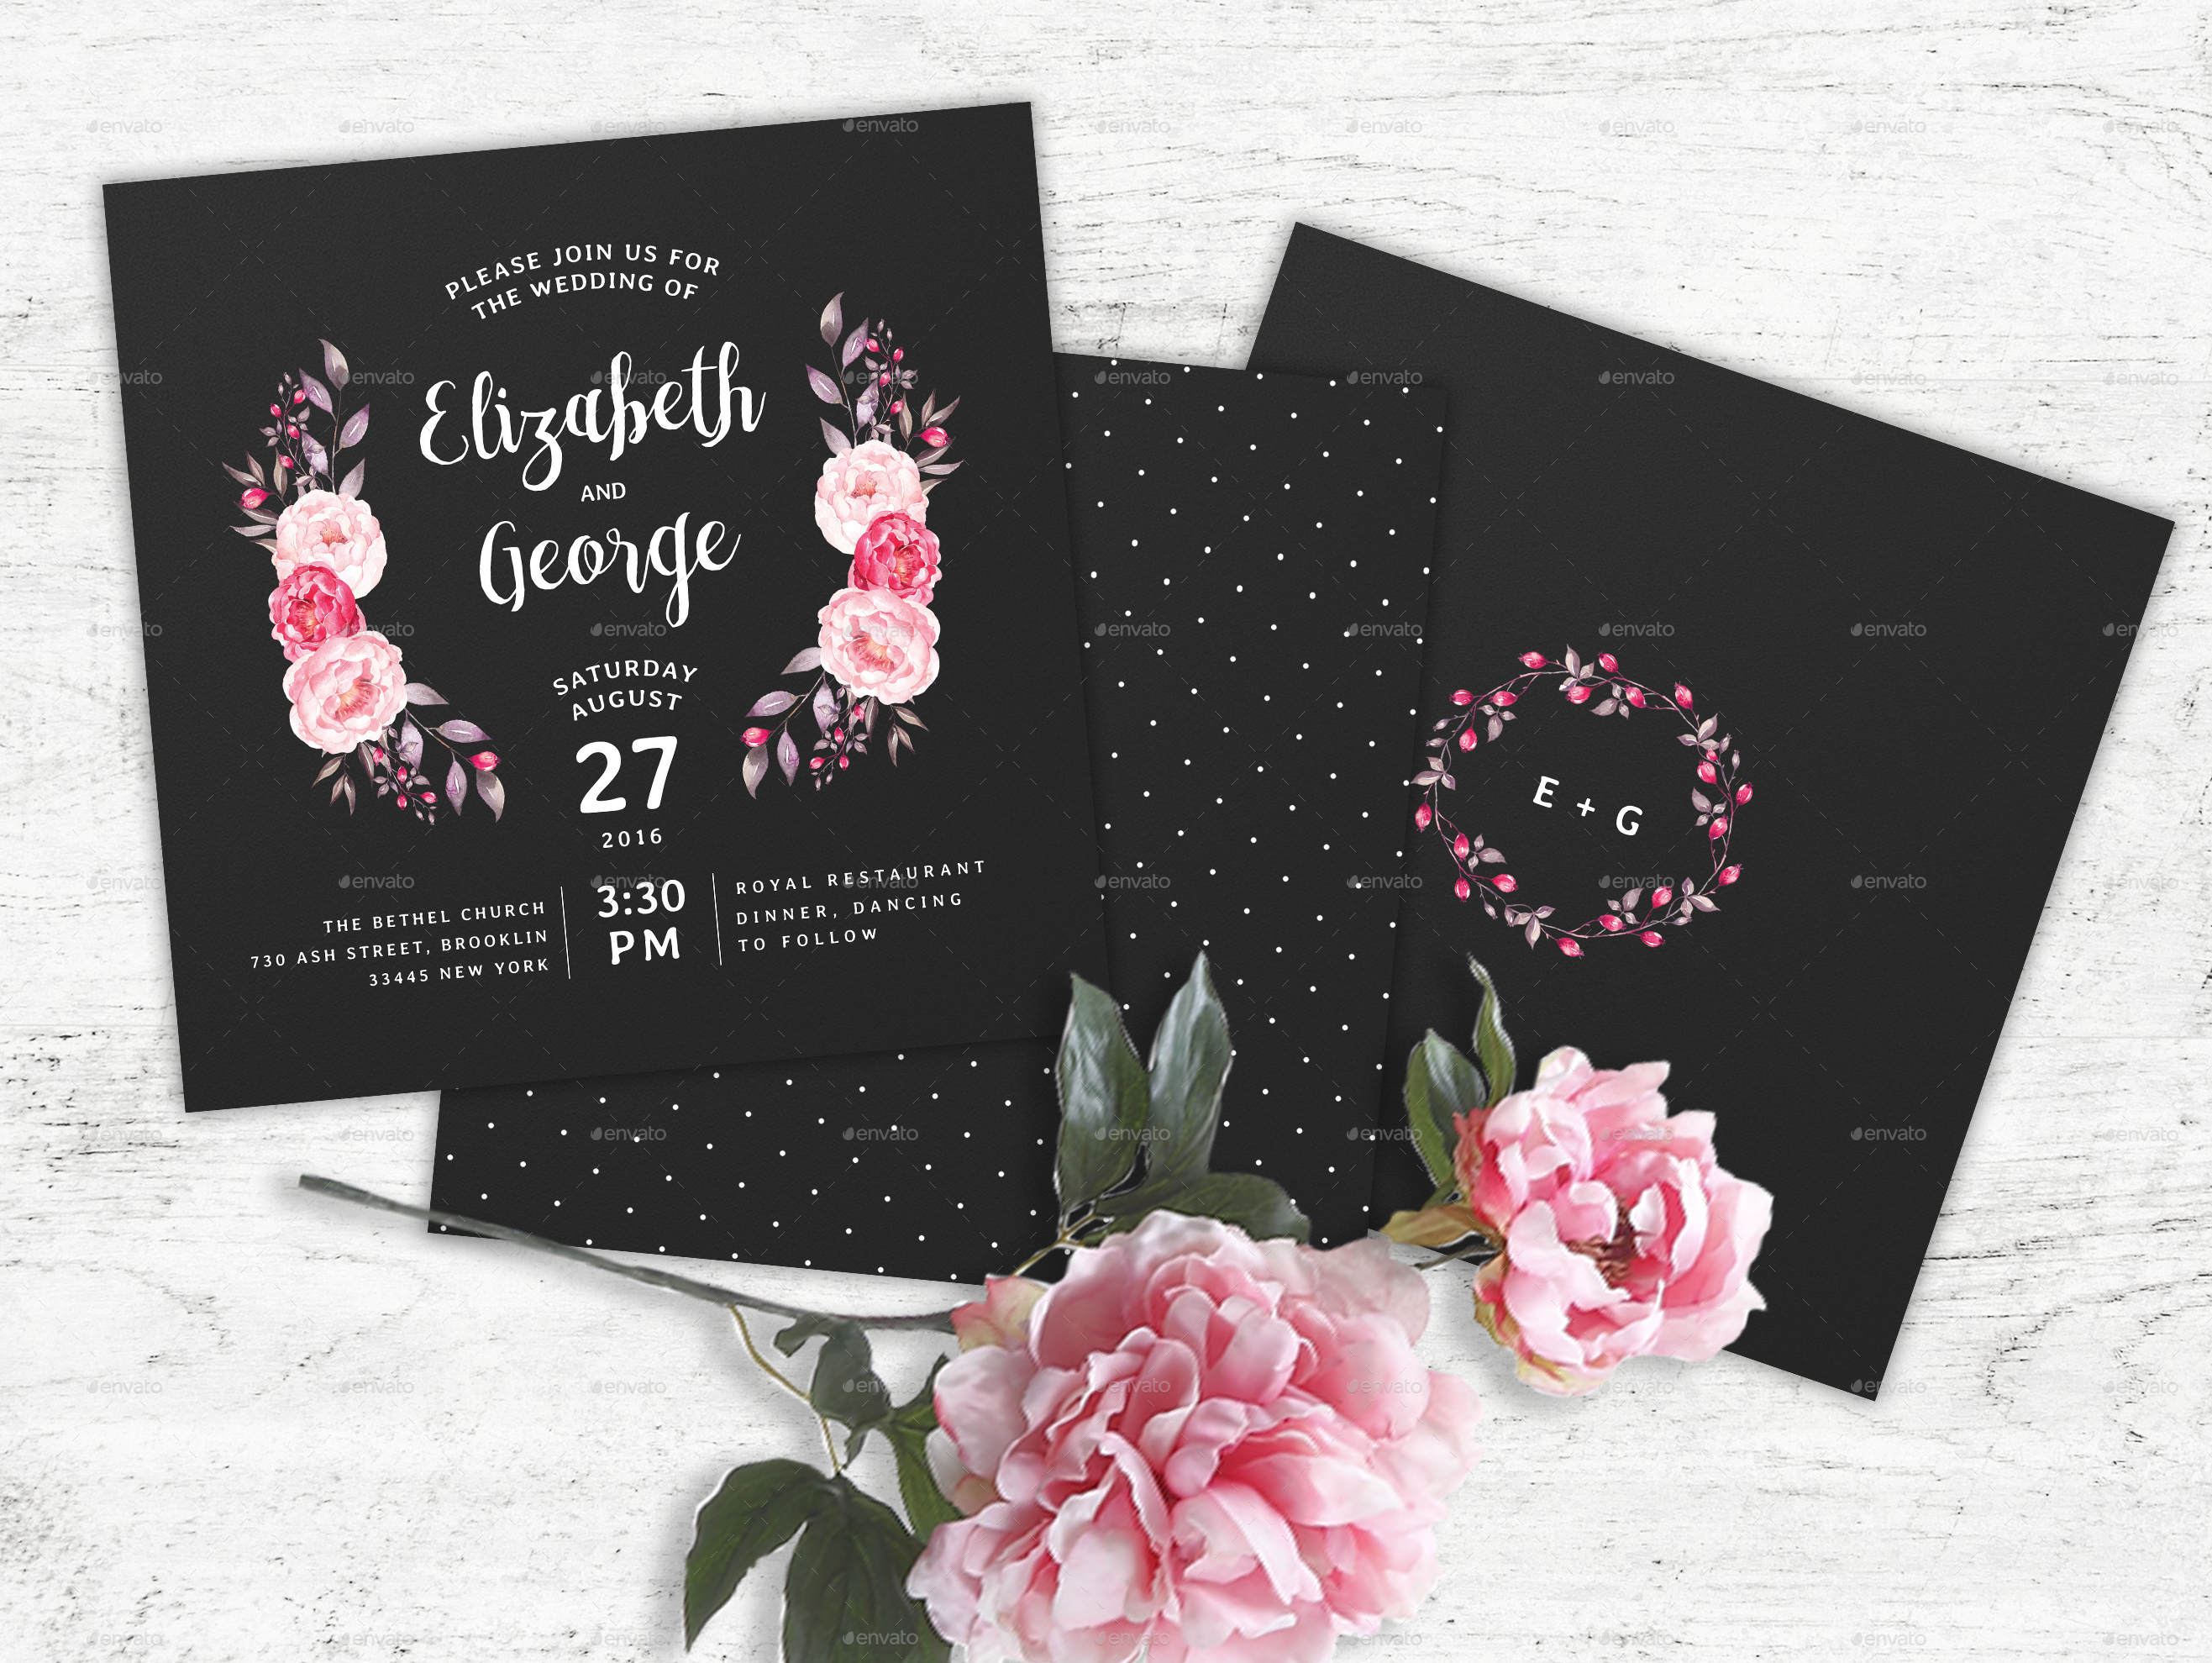 Chalkboard Wedding Invitation Stationery Weddings Cards Invites Watercolours Suite Preview Jpg Prev